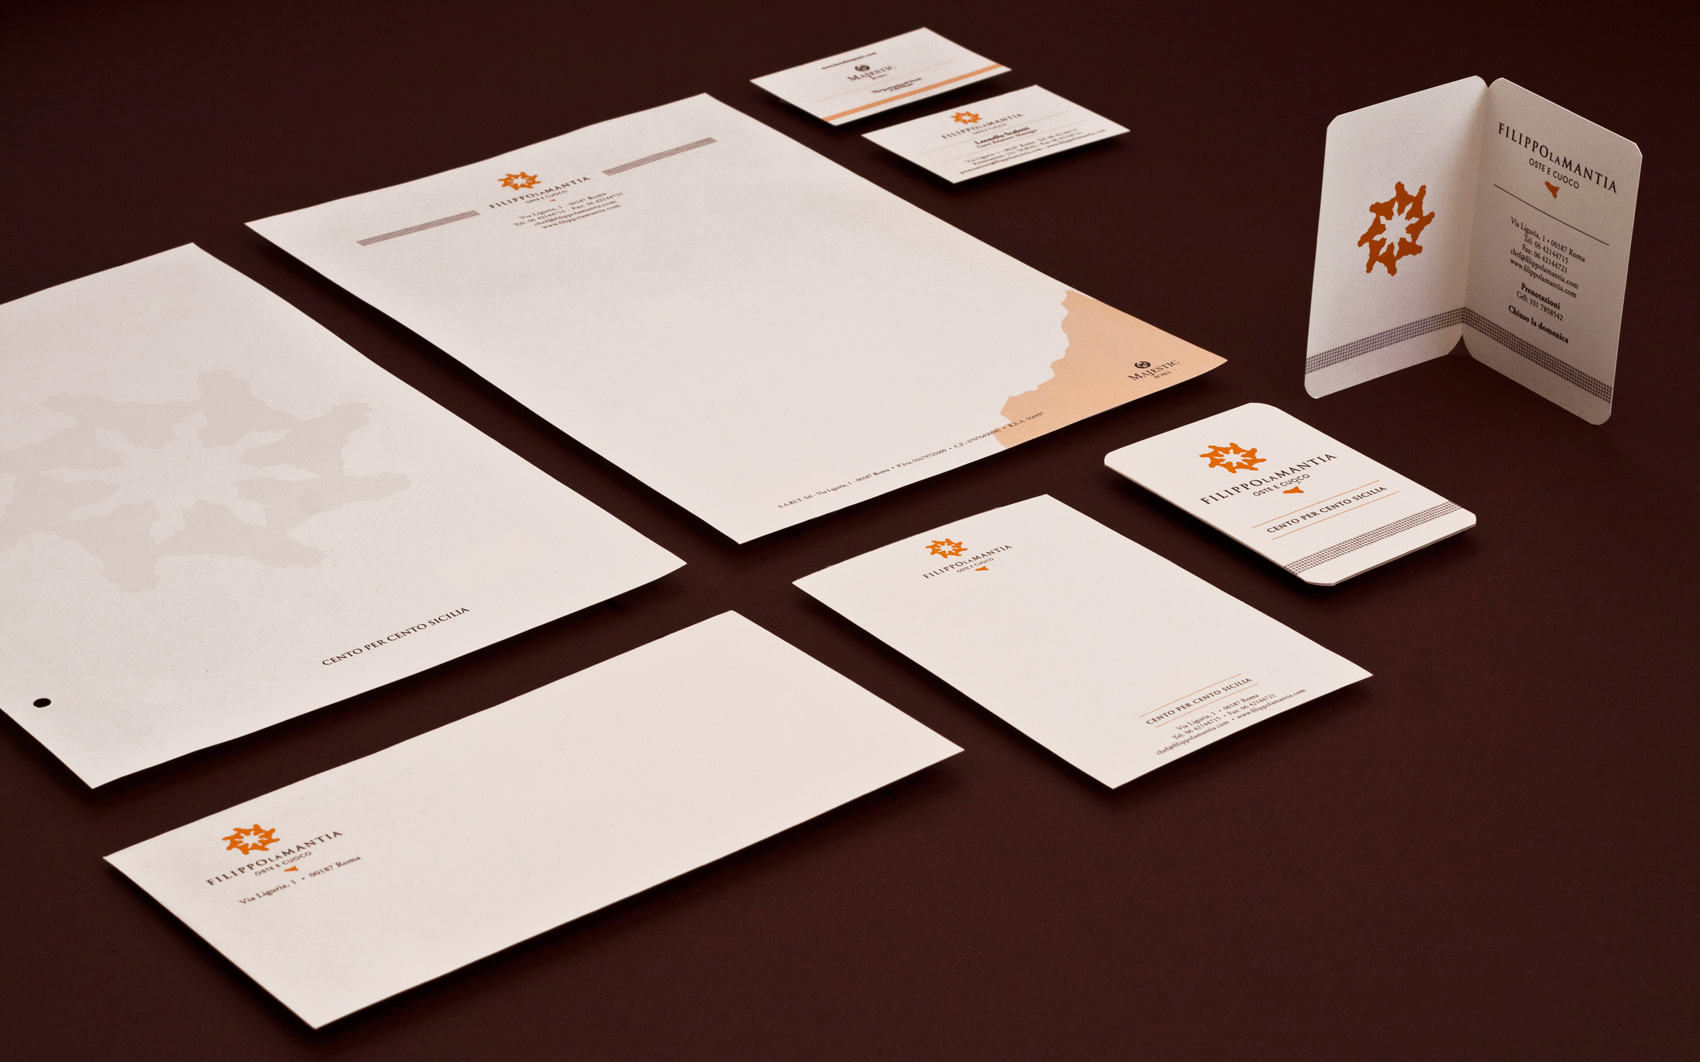 Filippo La Mantia Rebranding - Stationery